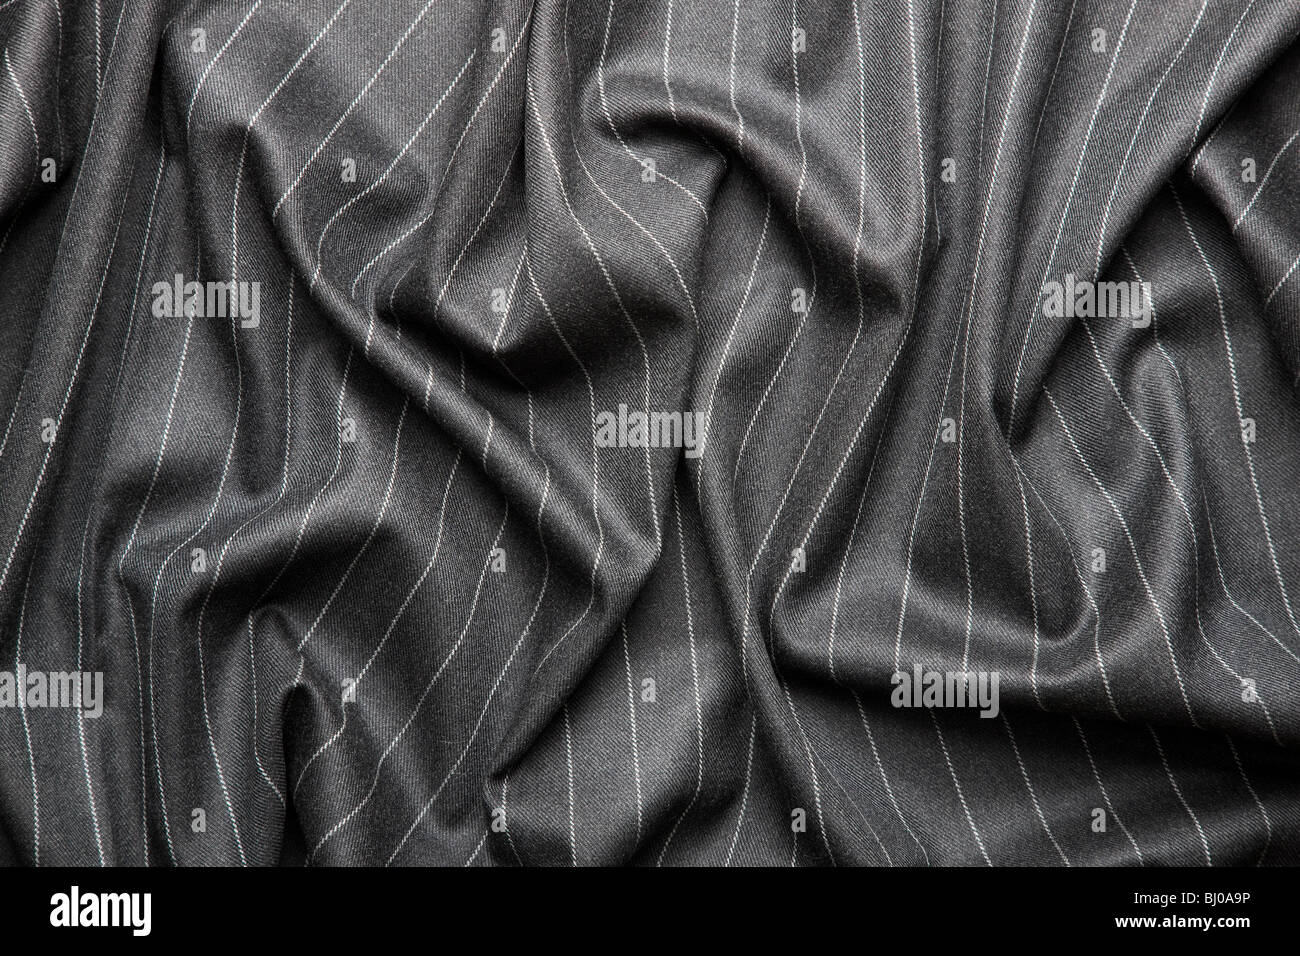 High quality pin stripe suit background texture with folds - Stock Image